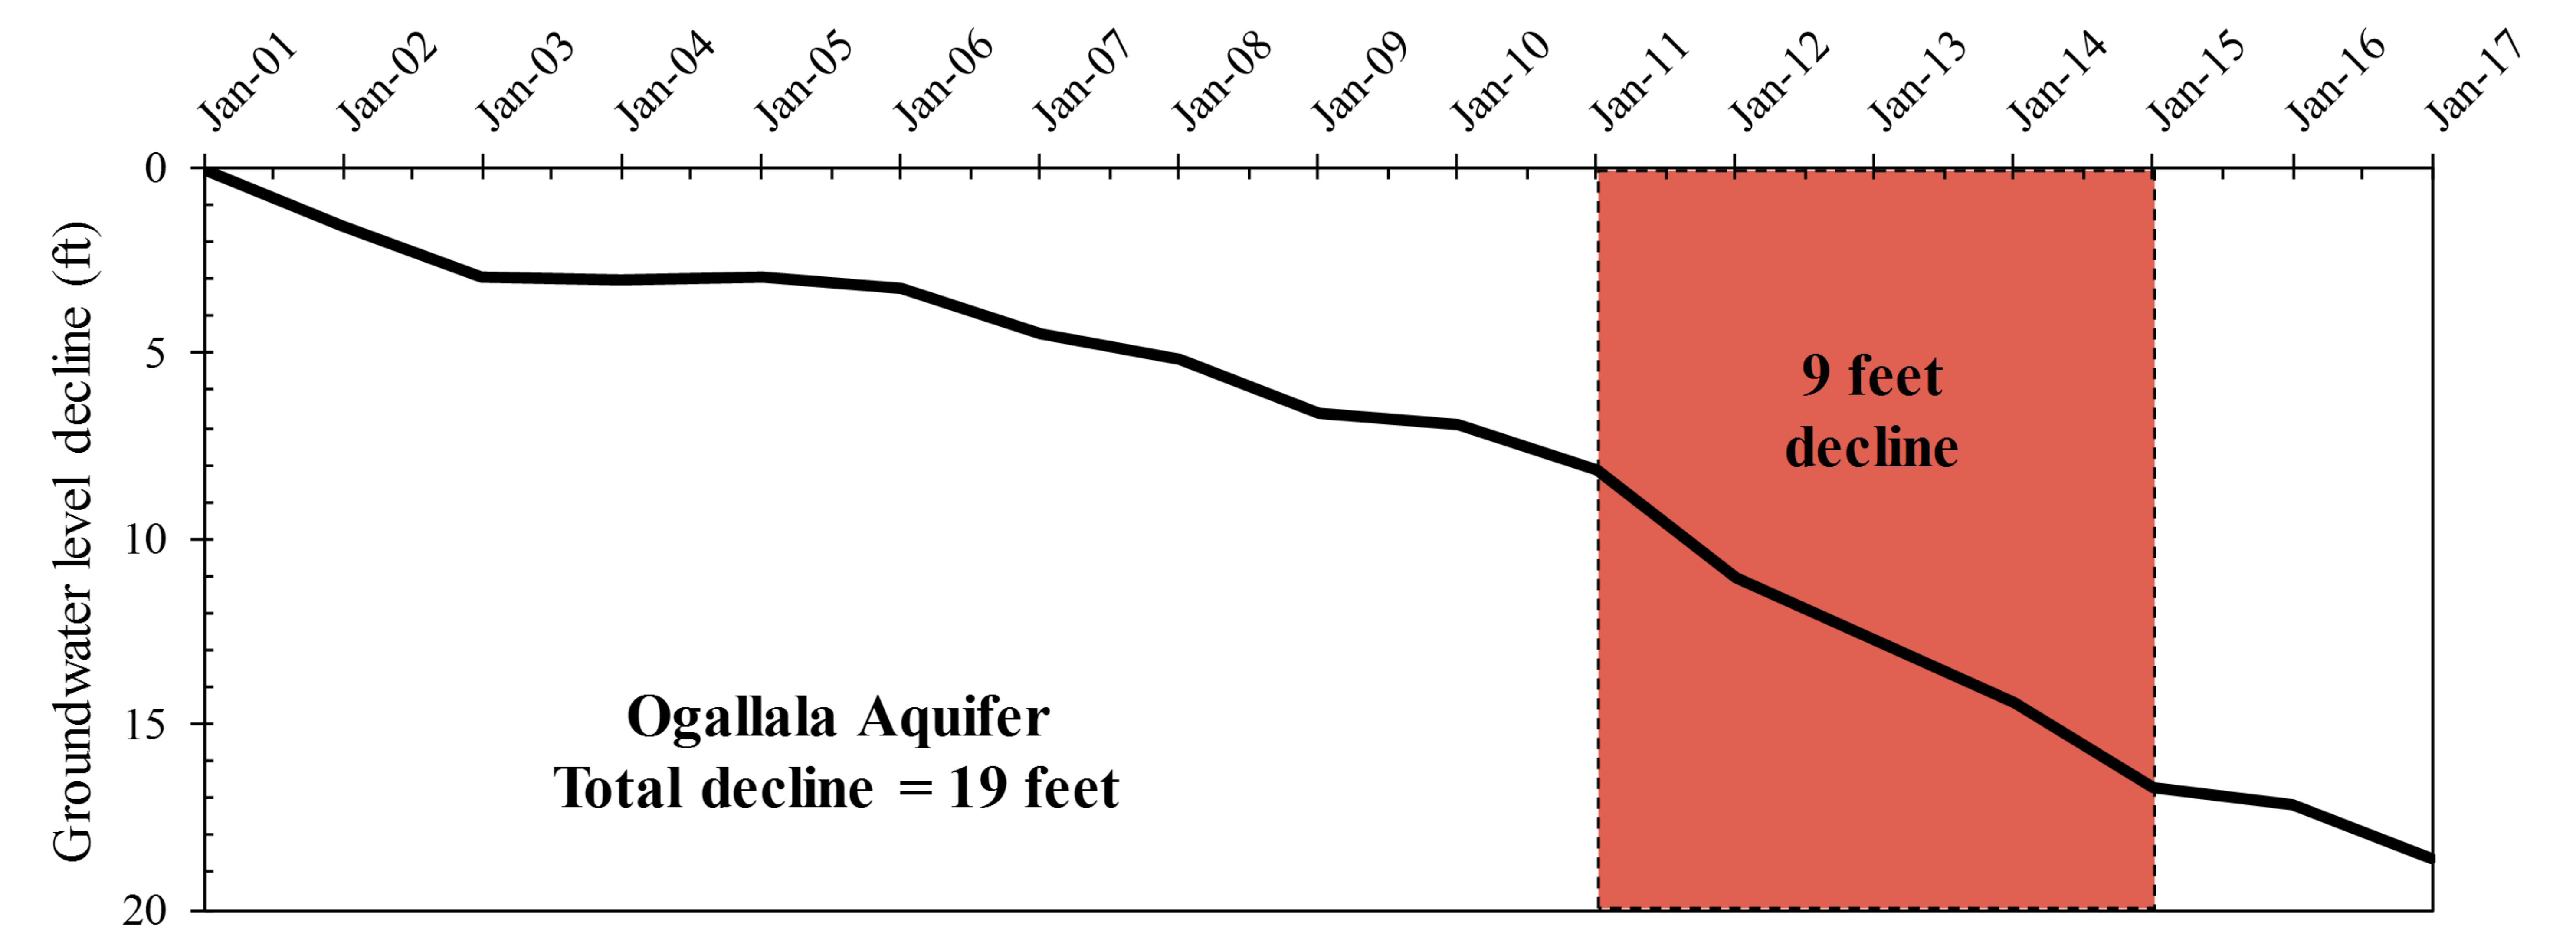 Groundwater level declines in the Ogallala aquifer.